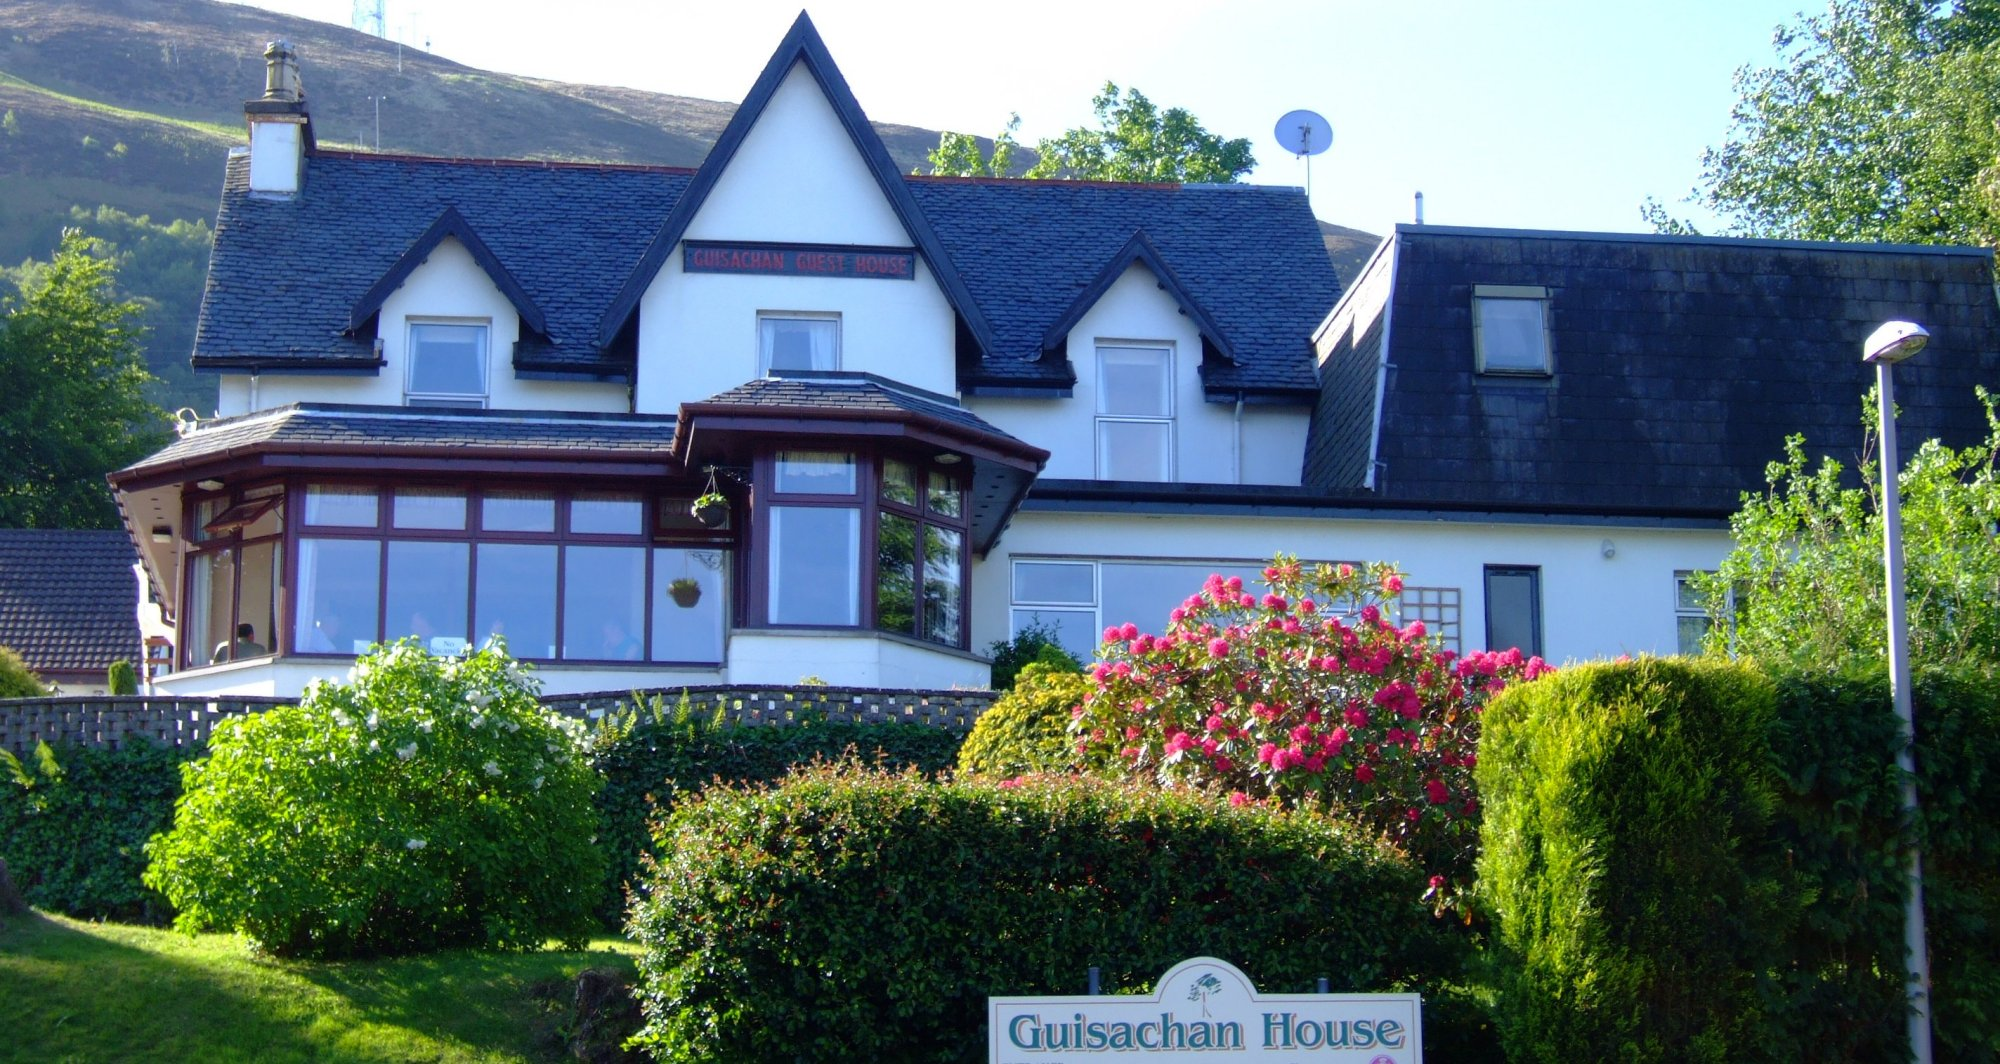 The Guisachan Guest House, my home from home for two nights